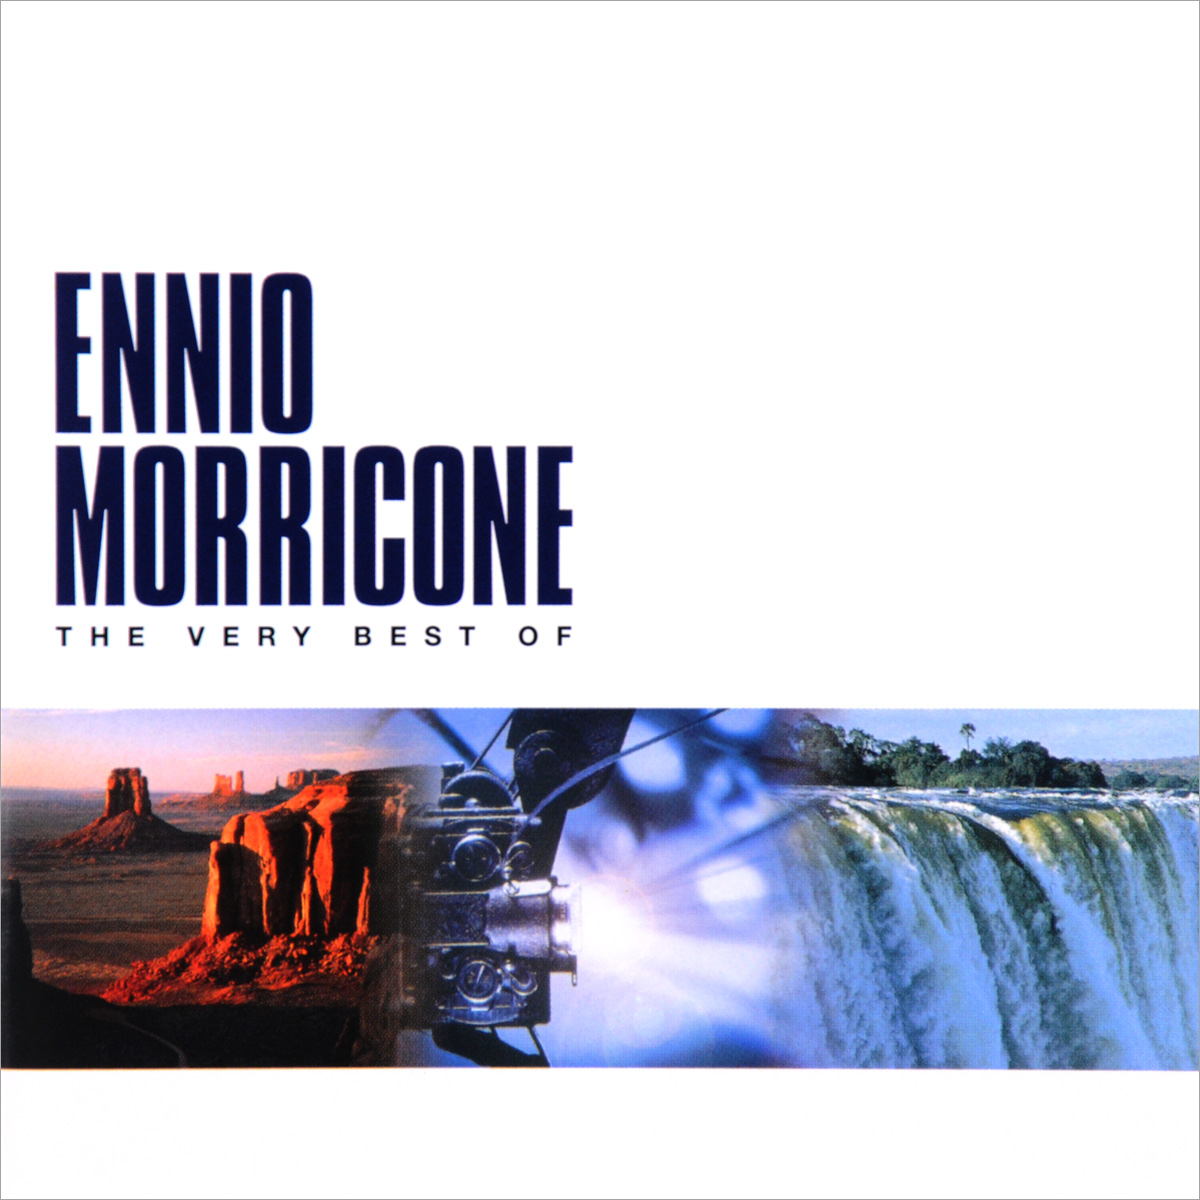 Эннио Морриконе Ennio Morricone. The Very Best Of Ennio Morricone эннио морриконе ennio morricone a pure formality lp